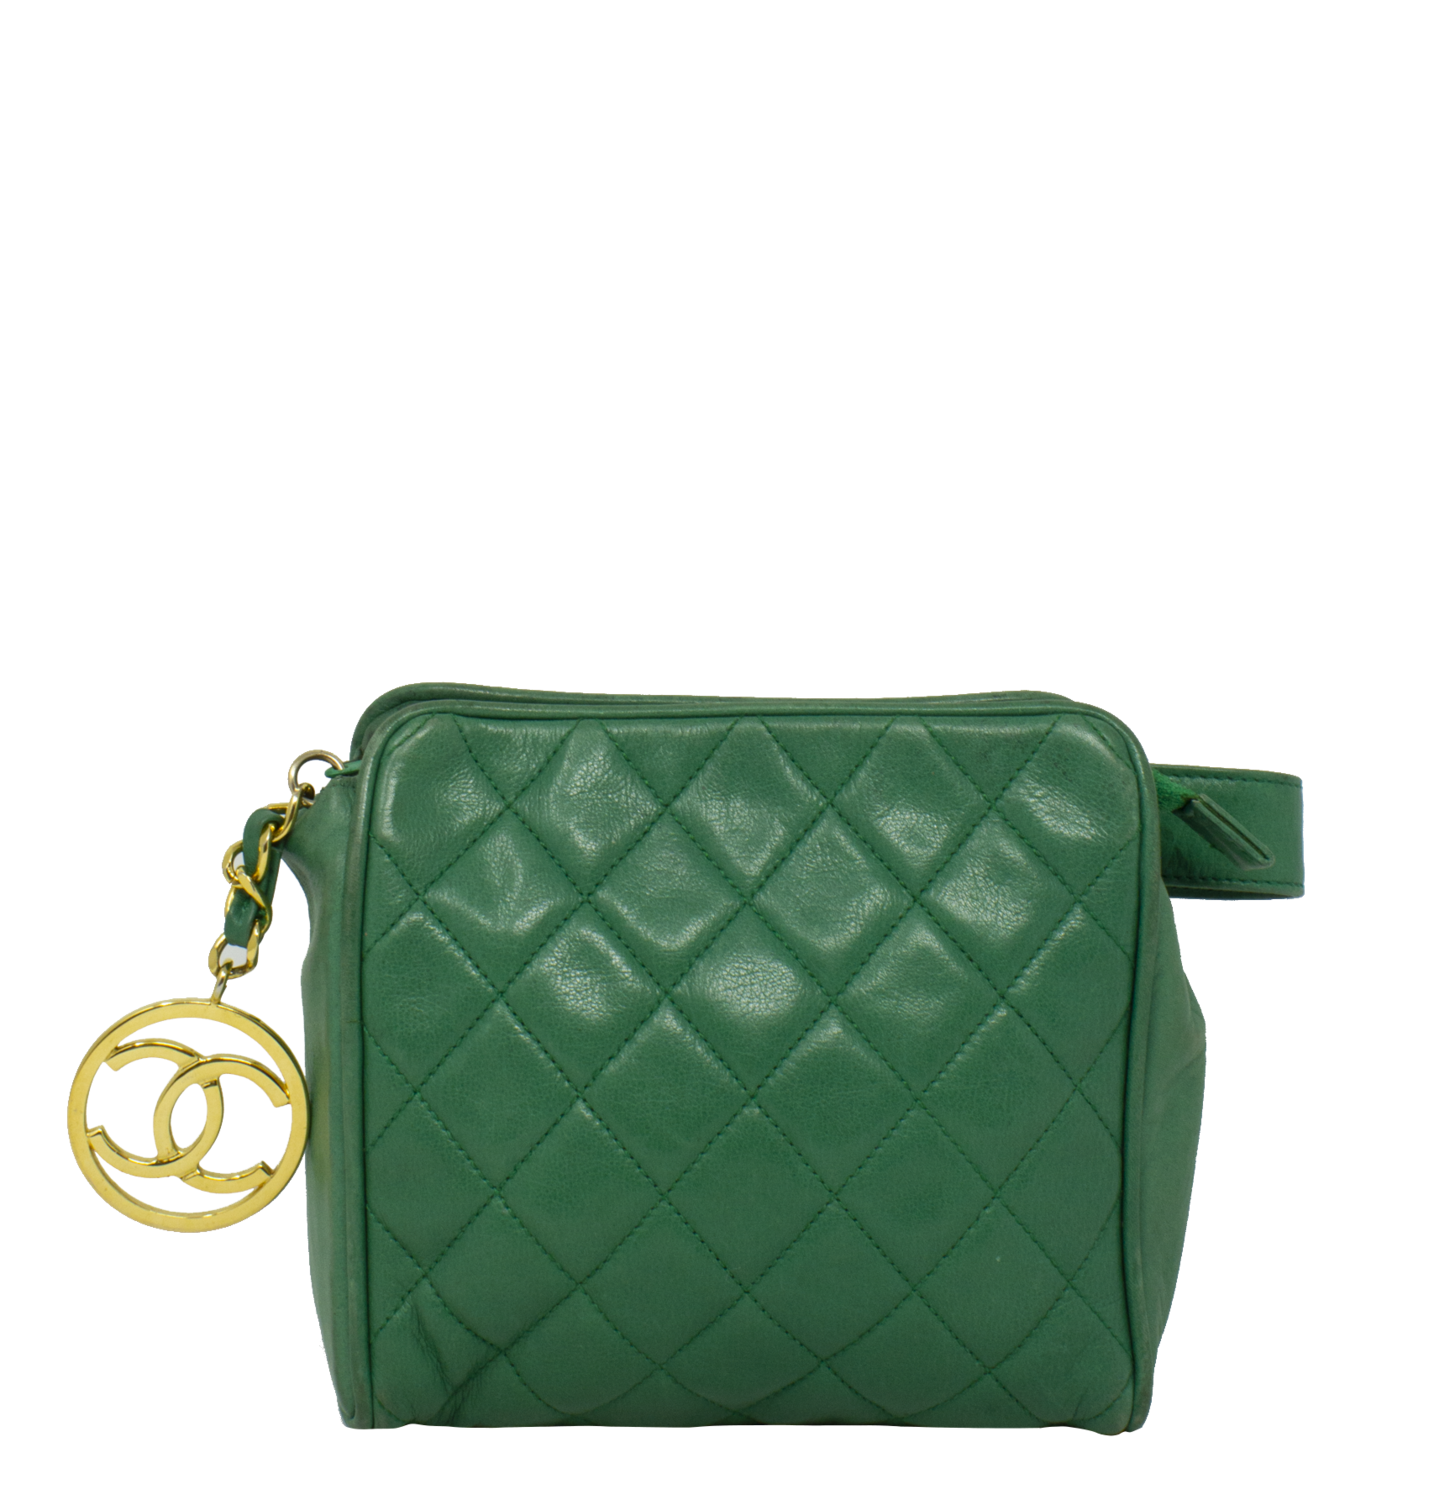 Chanel Green Quilted CC Charm Belt Bag